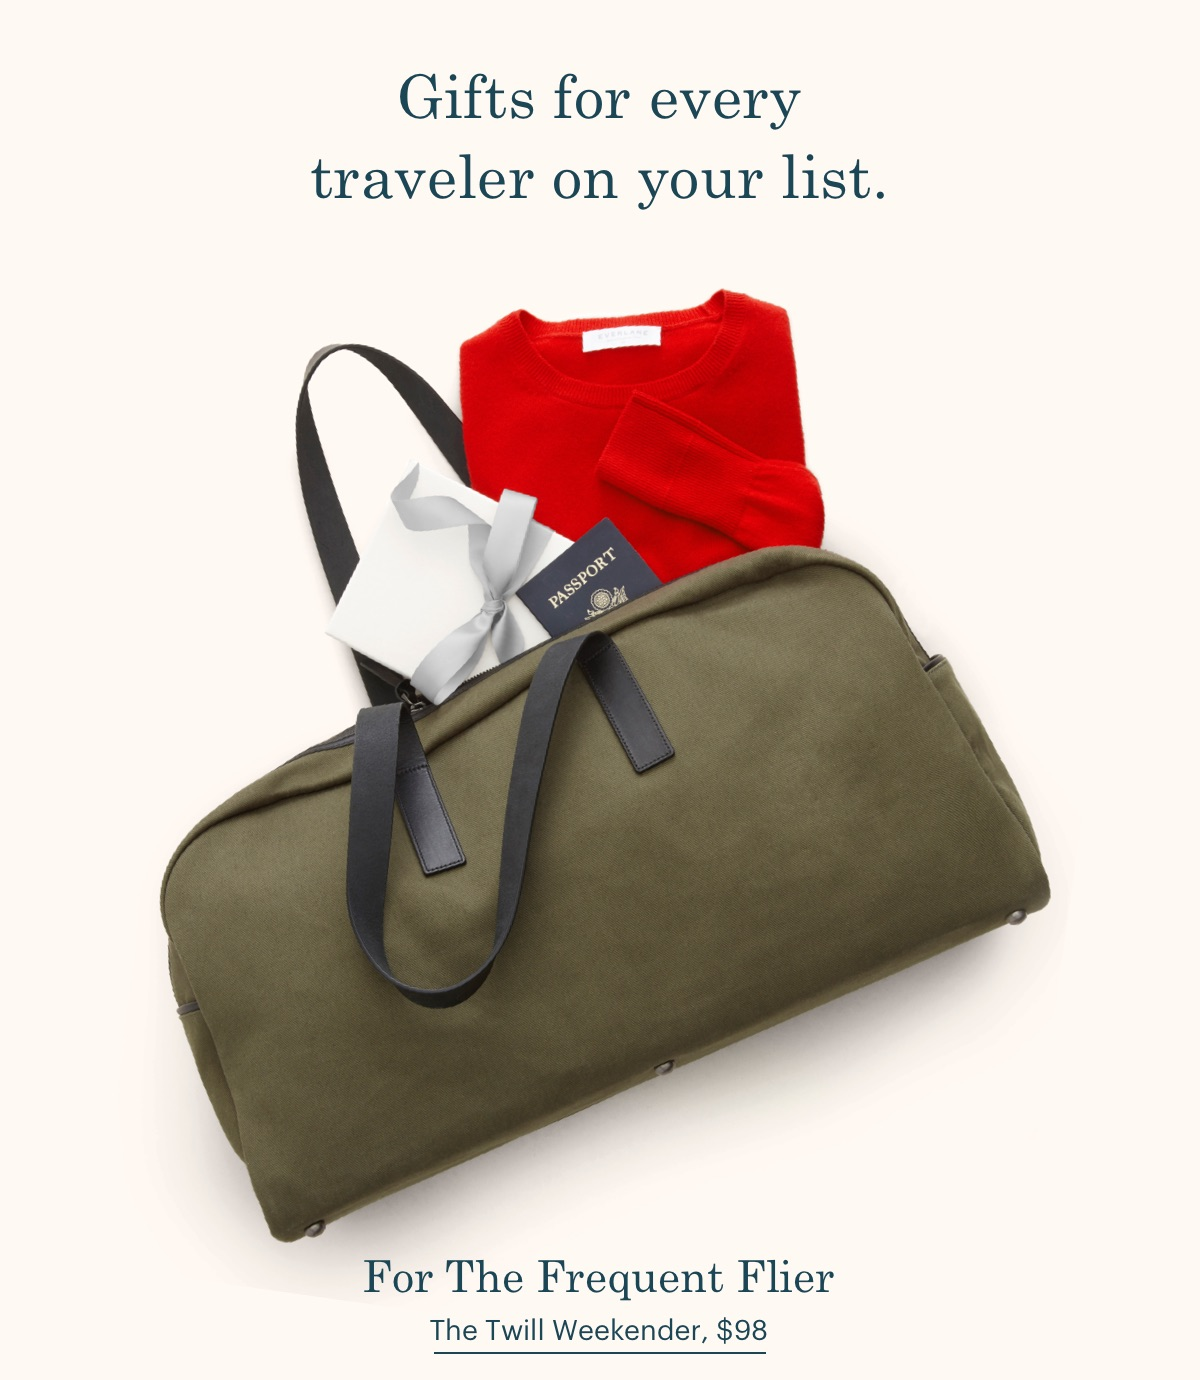 Gifts for every traveler on your list. For The Frequent Flier